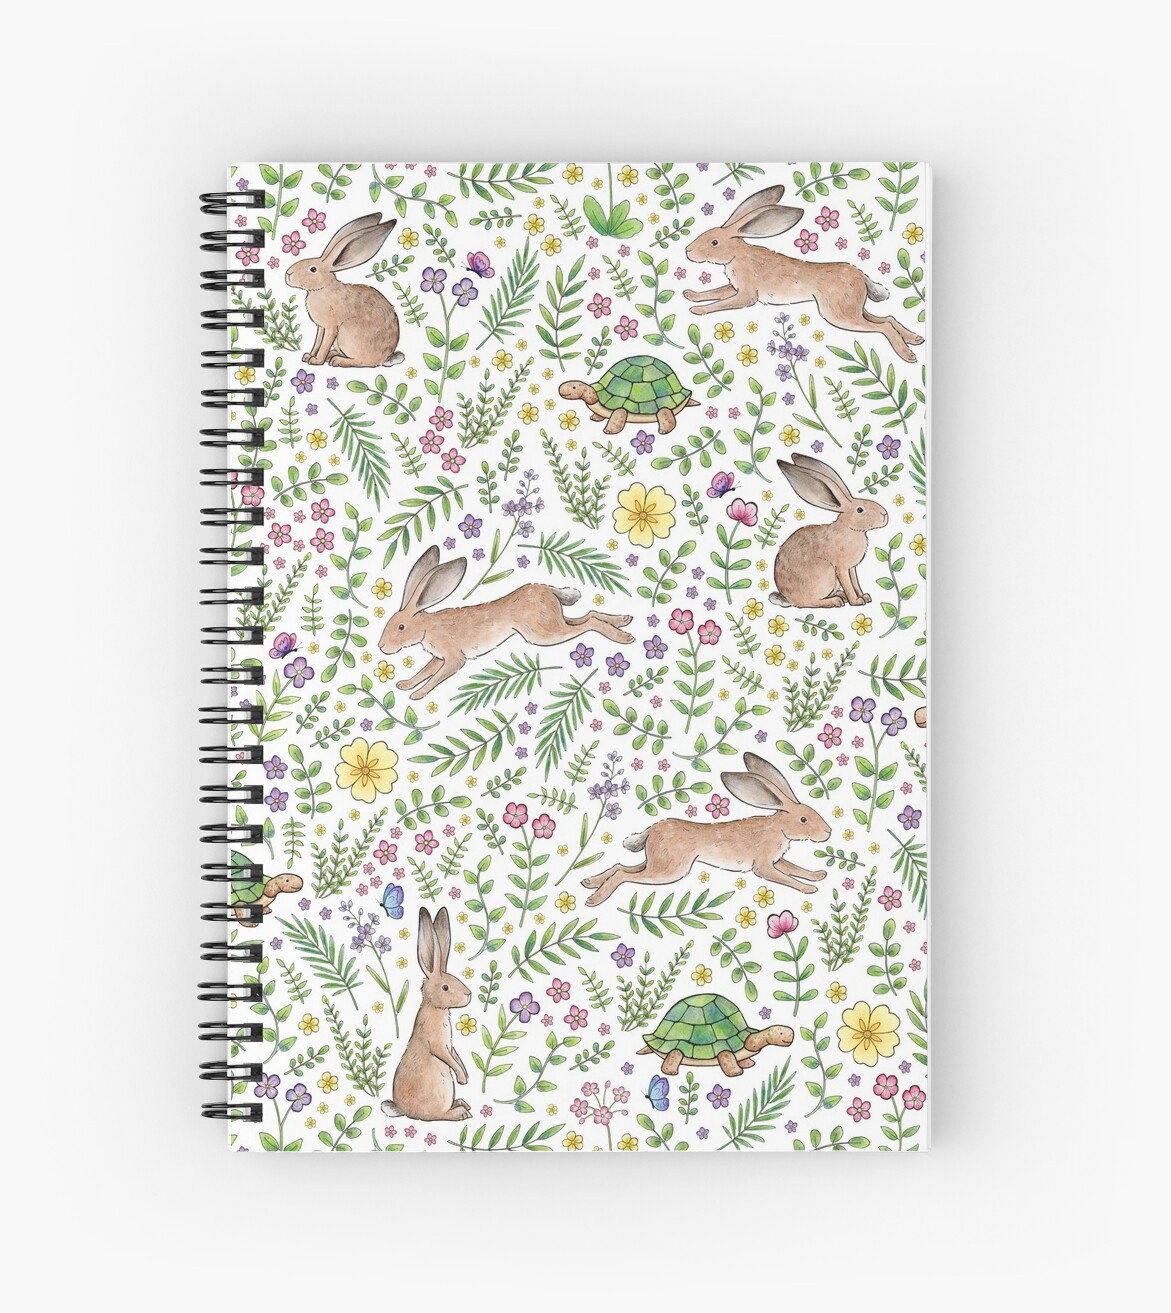 Spring Time Tortoises and Hares by Hazel Fisher